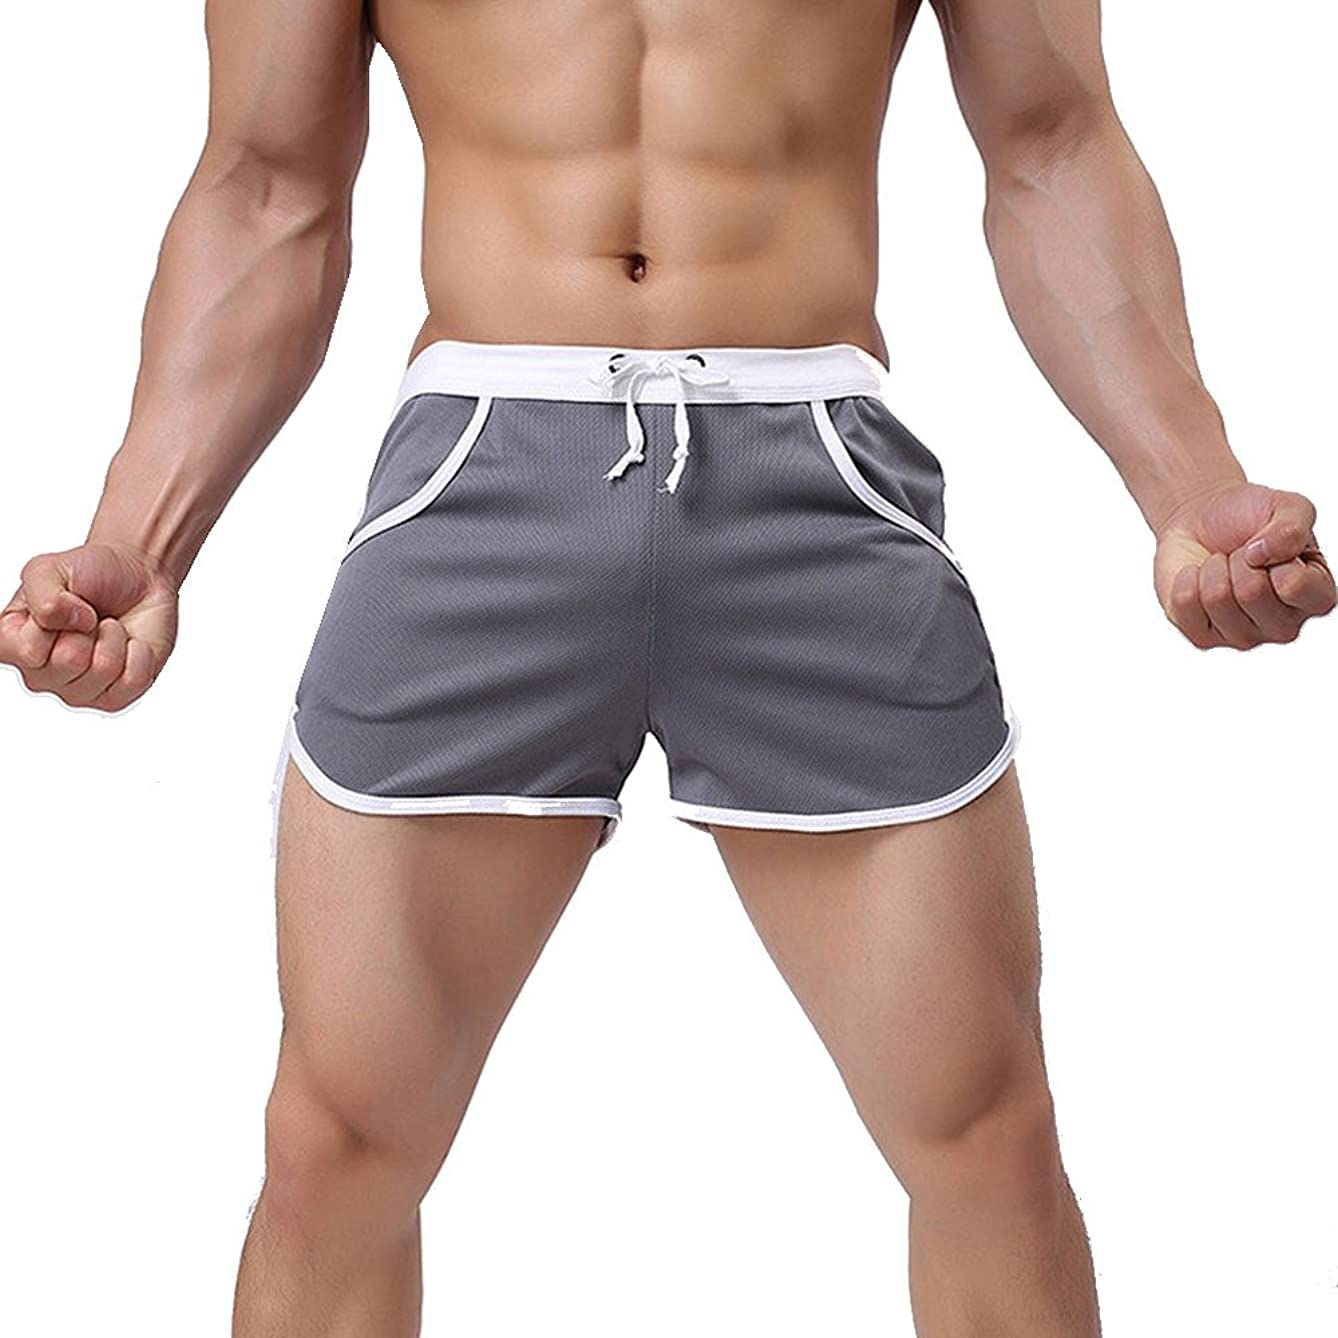 Sevem-D Summer Mens Jogger Sporting Shorts Slimming Men Bodybuilding Short Pants Fitness Gyms Shorts